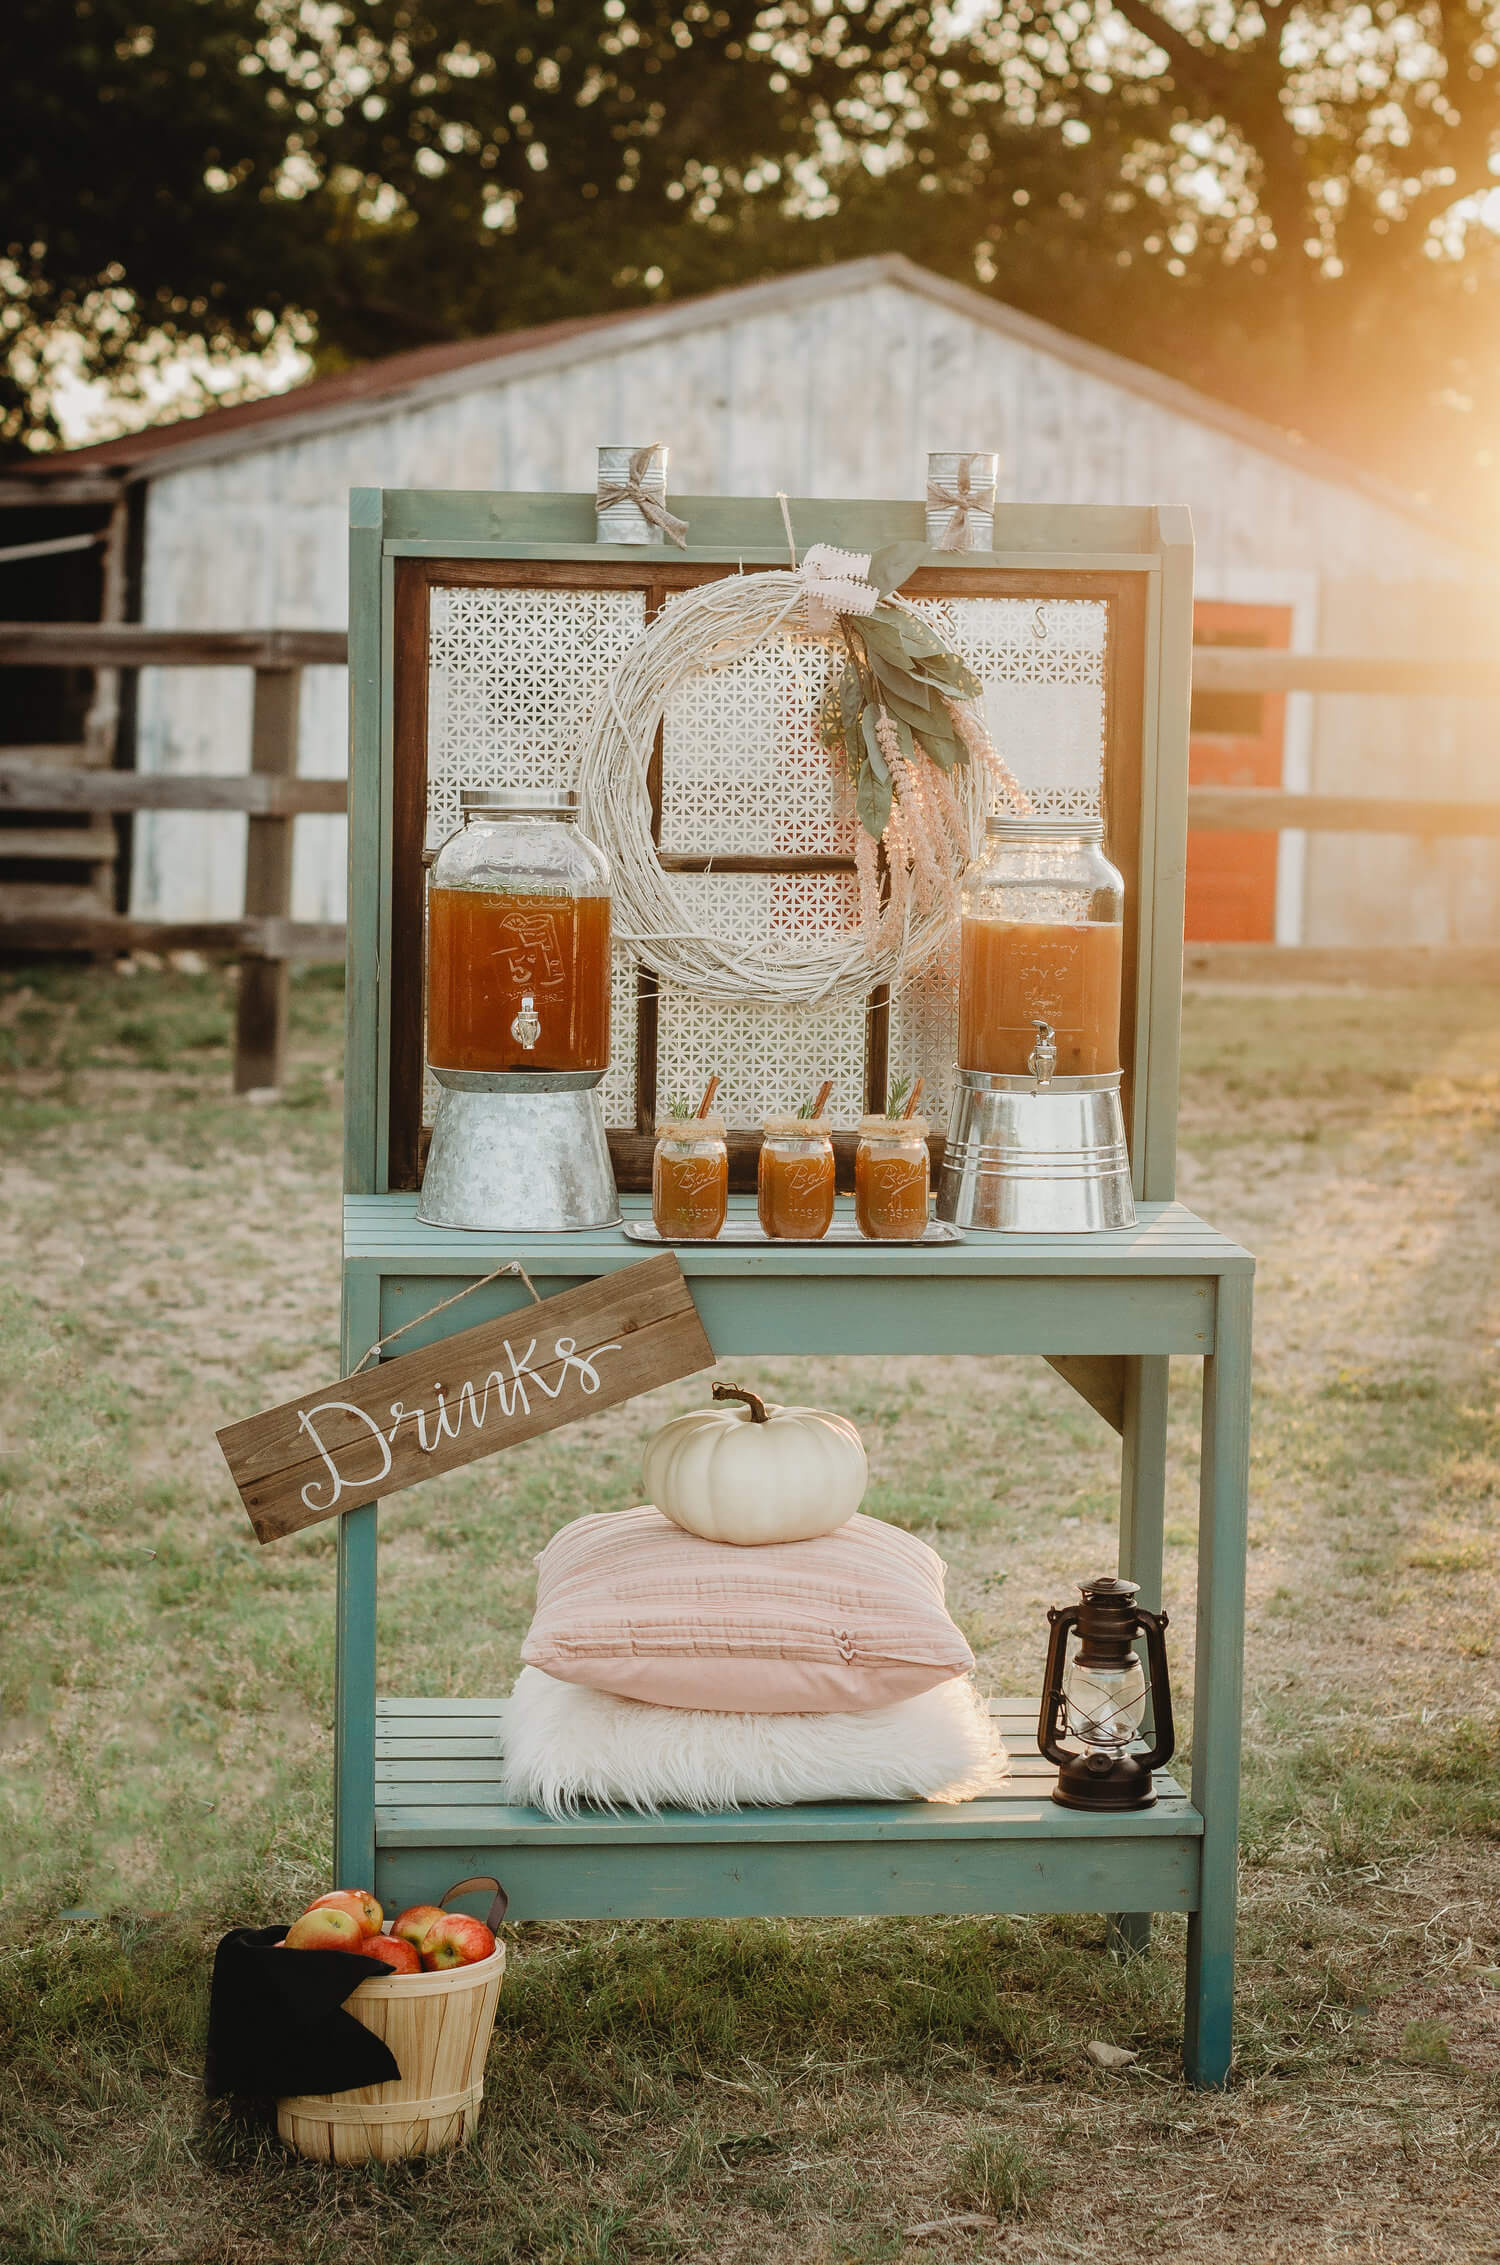 This rustic Bridal Shower Drink Station is created with a gardeners tool table. Caramel apple cider and an apple pie cocktail are the perfect drinks for your drink bar for fall parties. Click to see even more details of this fall bridal shower by party stylist Mint Event Design. #bridalshowers #bridalshowerideas #rusticwedding #rusticbridalshower #bridalshowerdecor #farmwedding #drinkstation #drinkbar